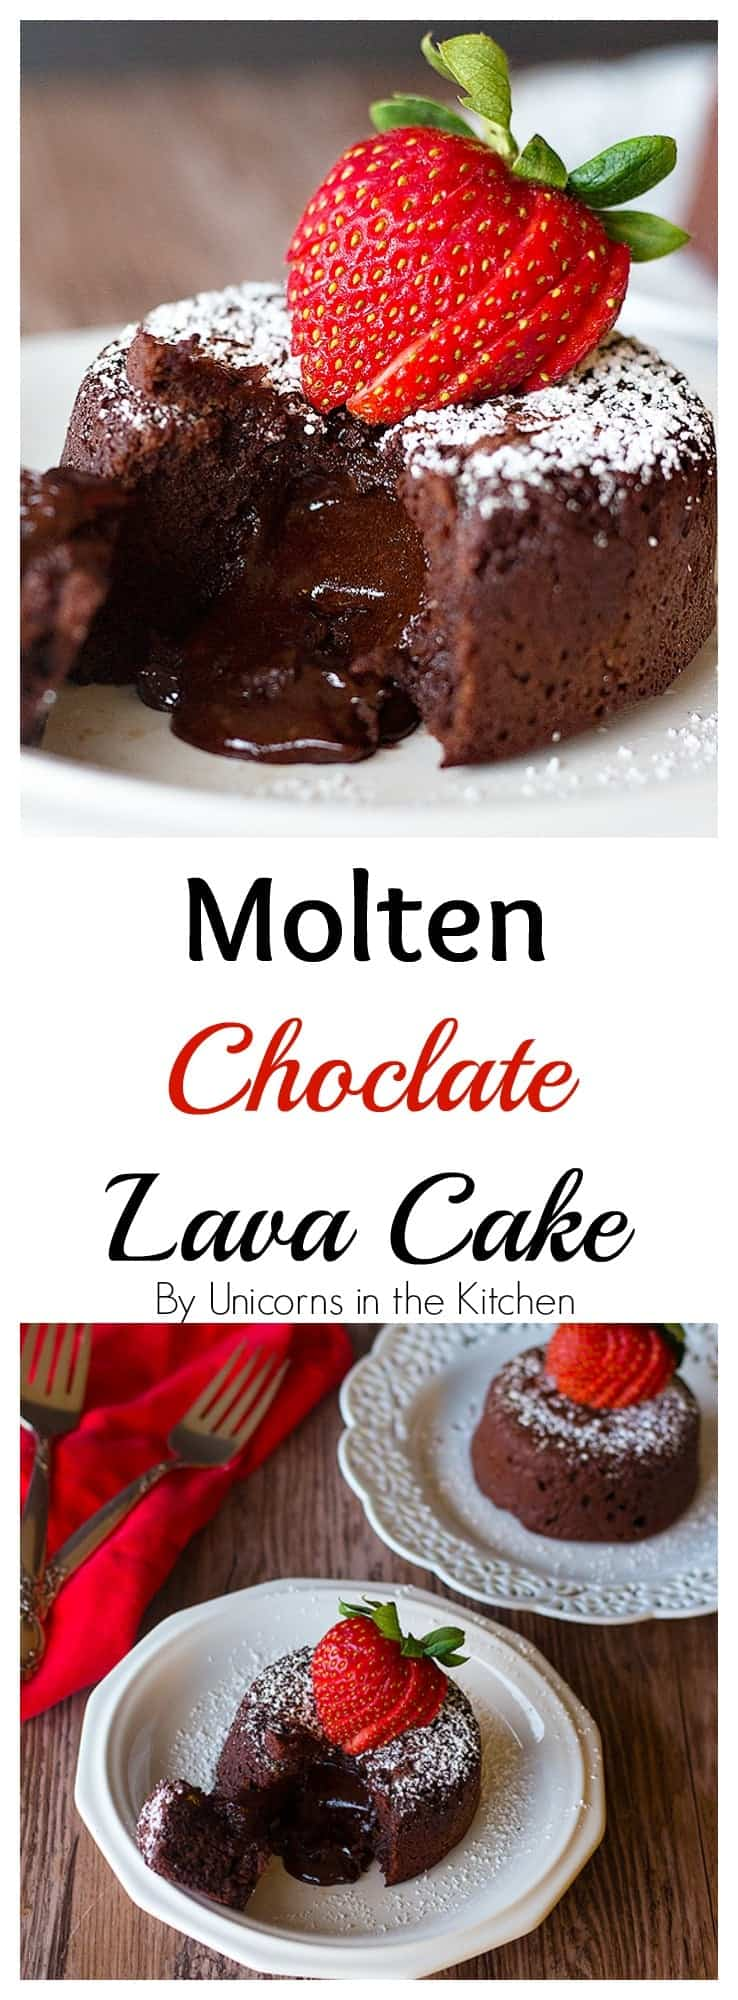 Molten Chocolate Lava Cake is such a delicious classic! It's moist and so chocolaty and when you cut into it, luscious chocolate oozes out!